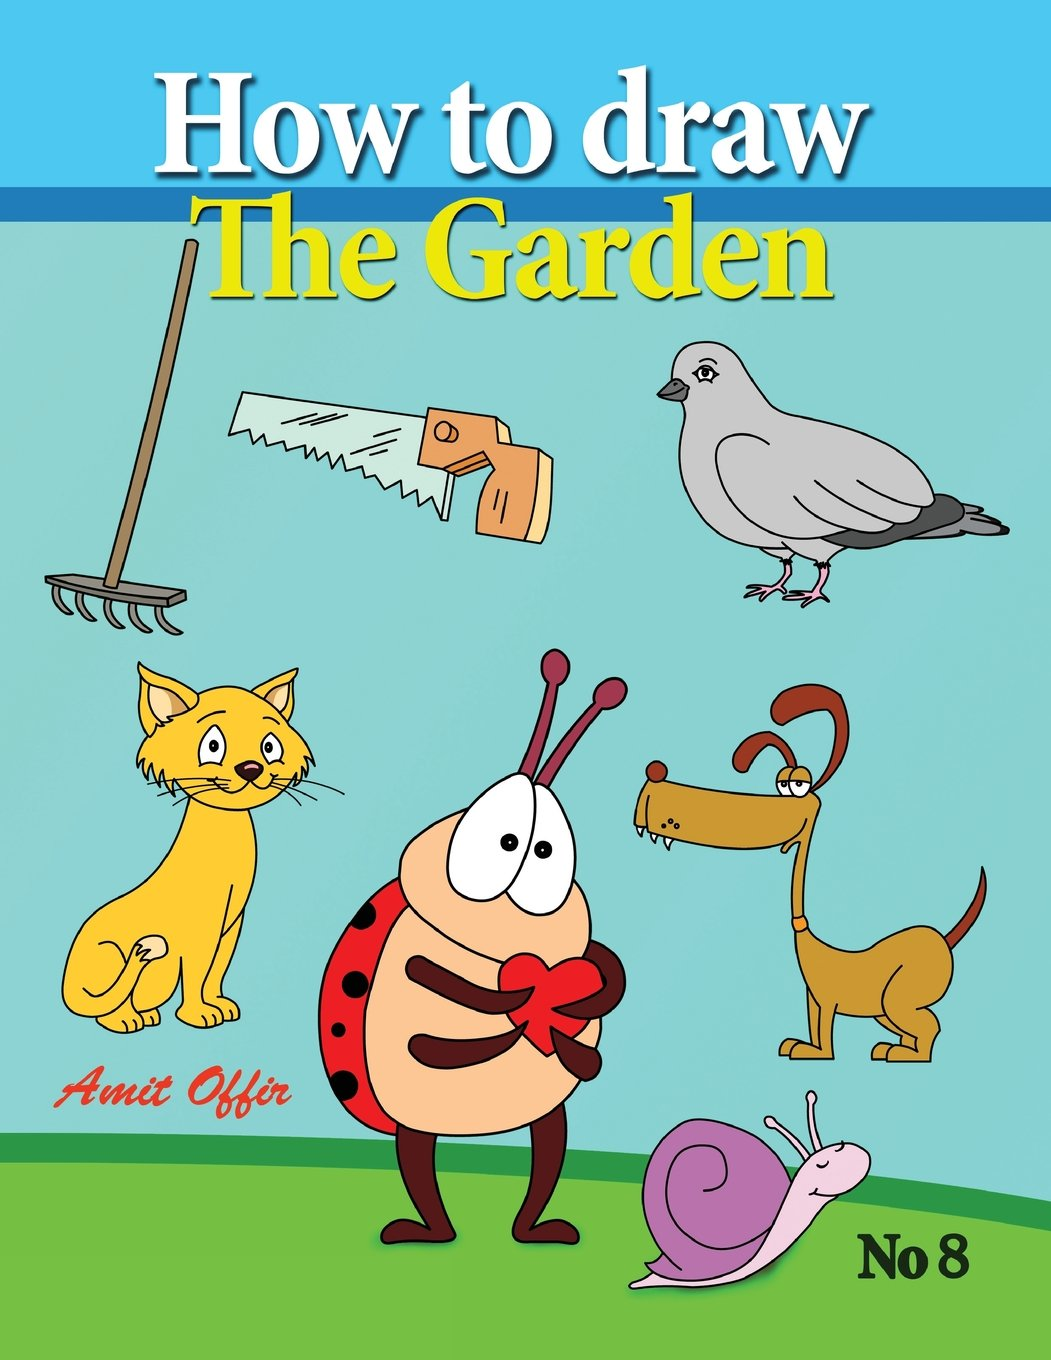 Garden drawing pictures - How To Draw The Garden Drawing Book For Kids And Adults That Will Teach You How To Draw Birds Step By Step How To Draw Cartoon Characters Amit Offir